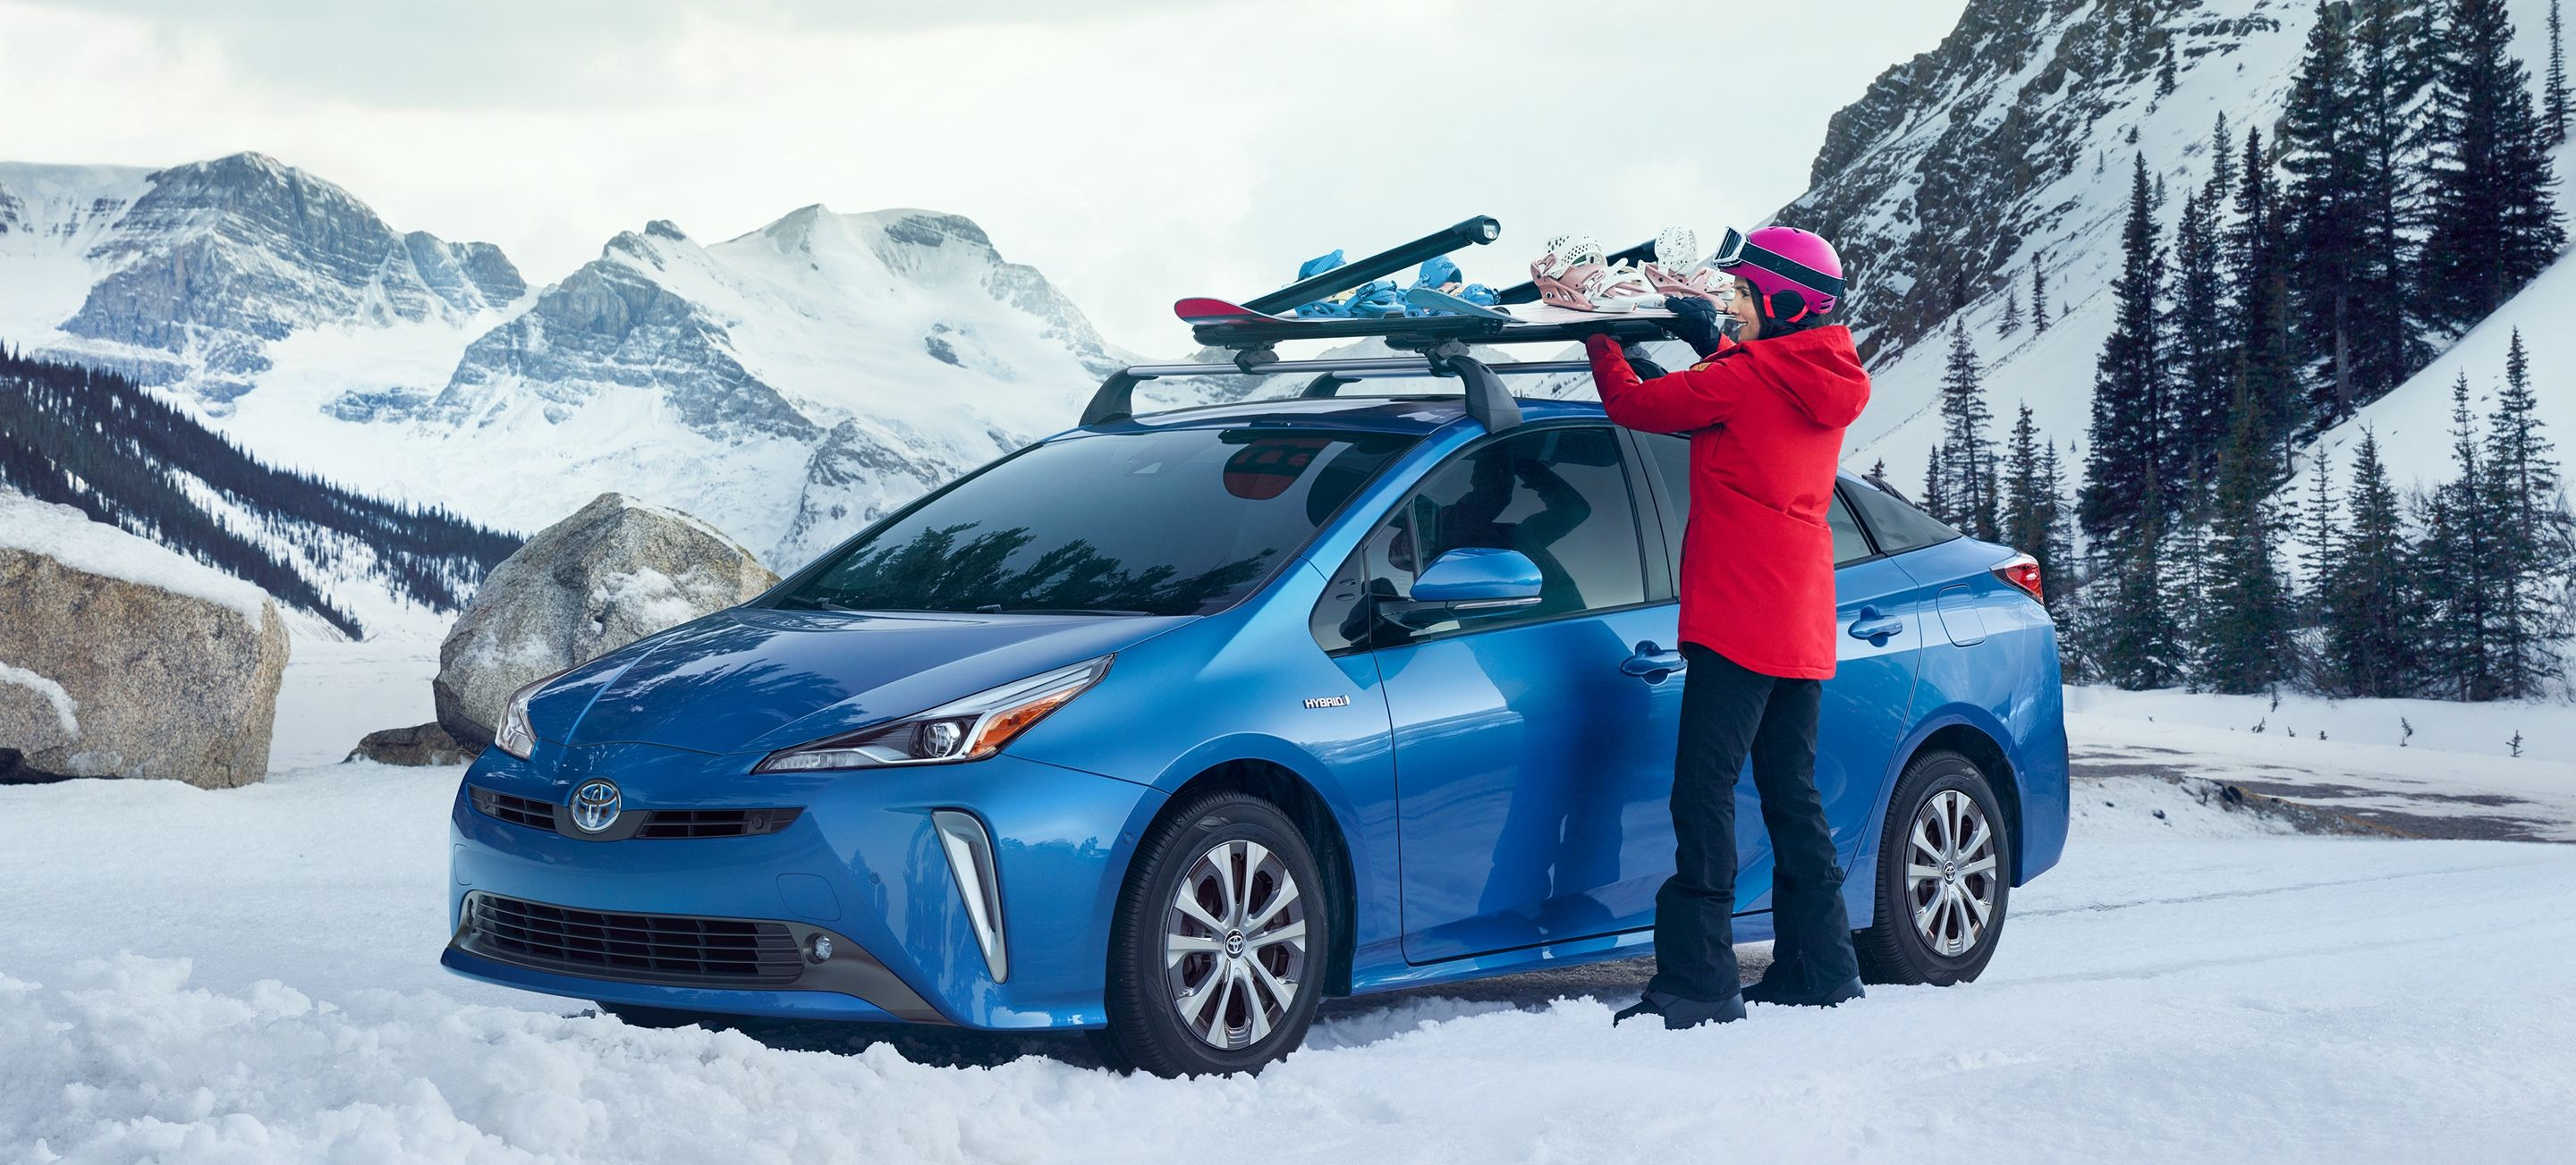 Which Toyota Vehicles Have AWD?